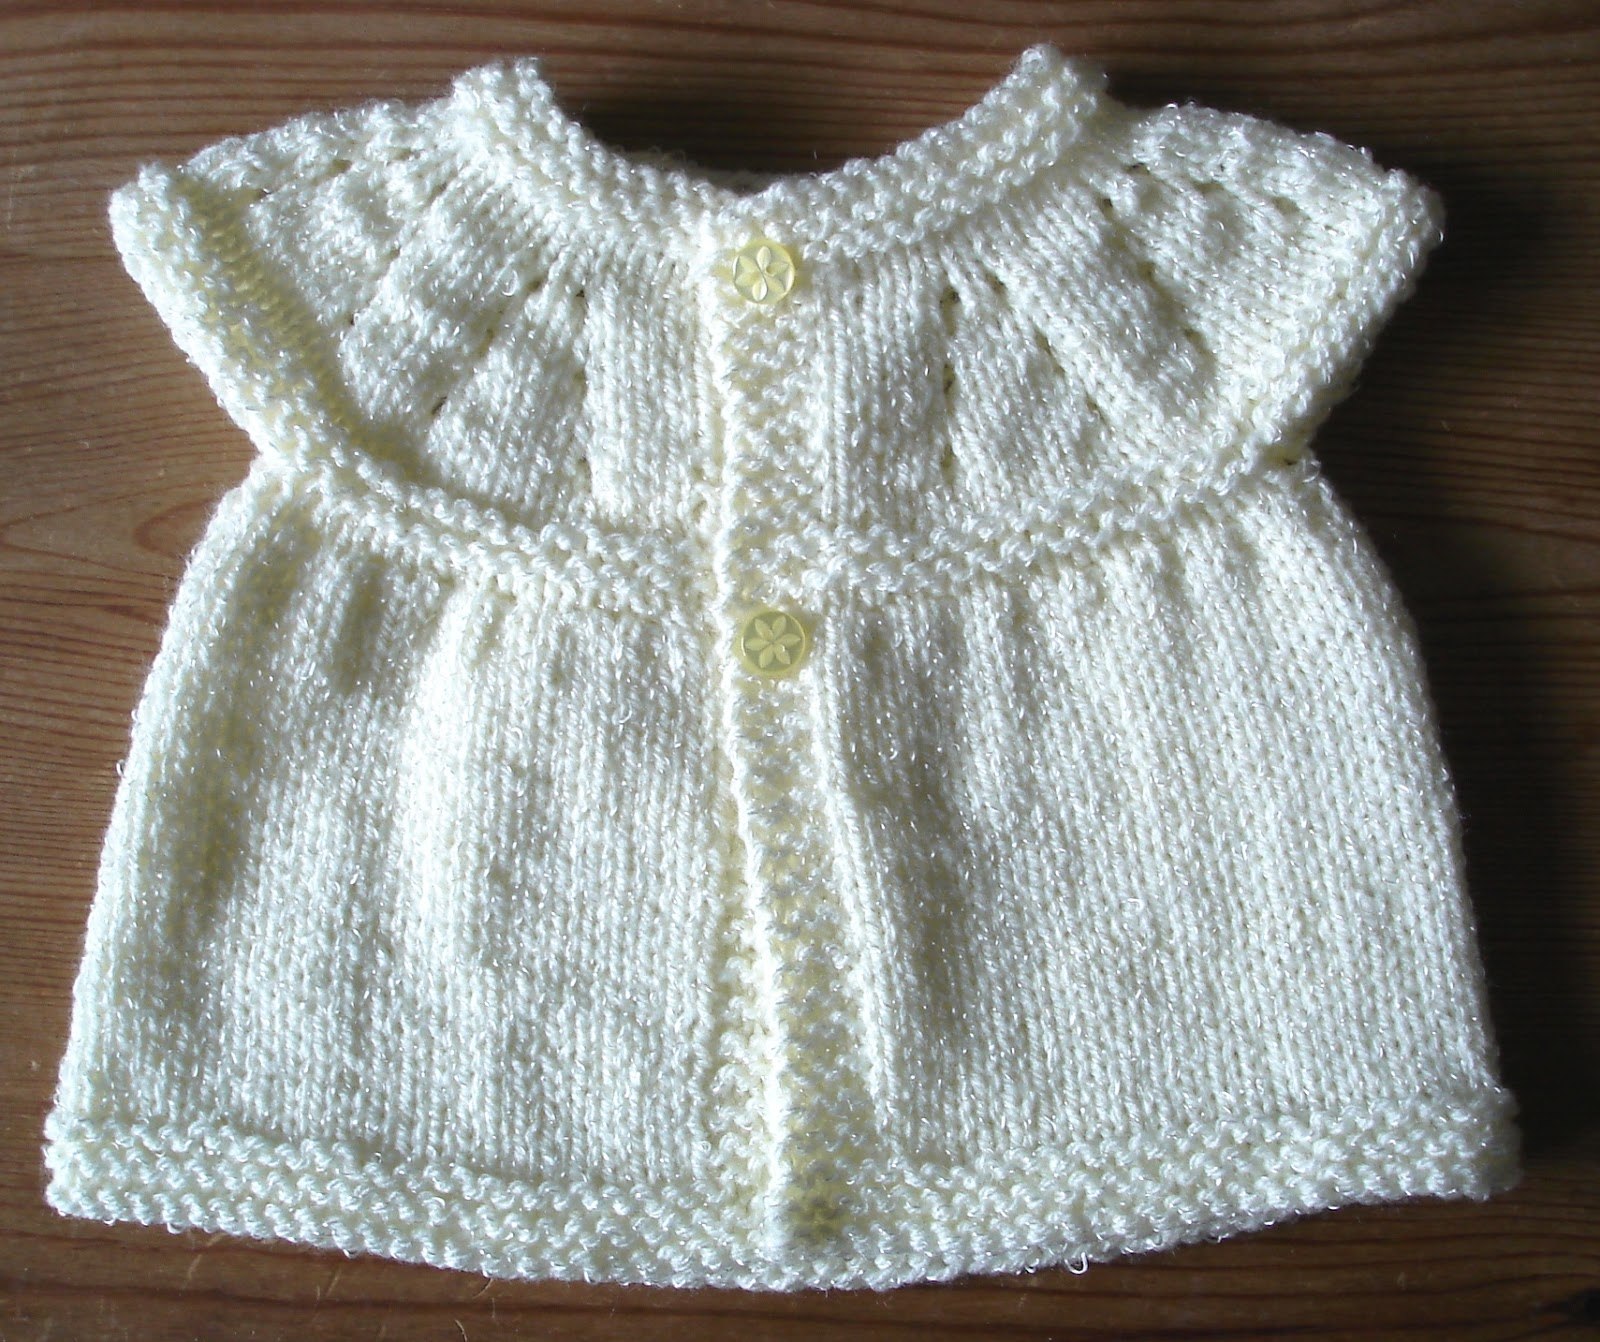 Knitting Designs For Newborn Babies : Marianna s lazy daisy days all in one knitted baby tops